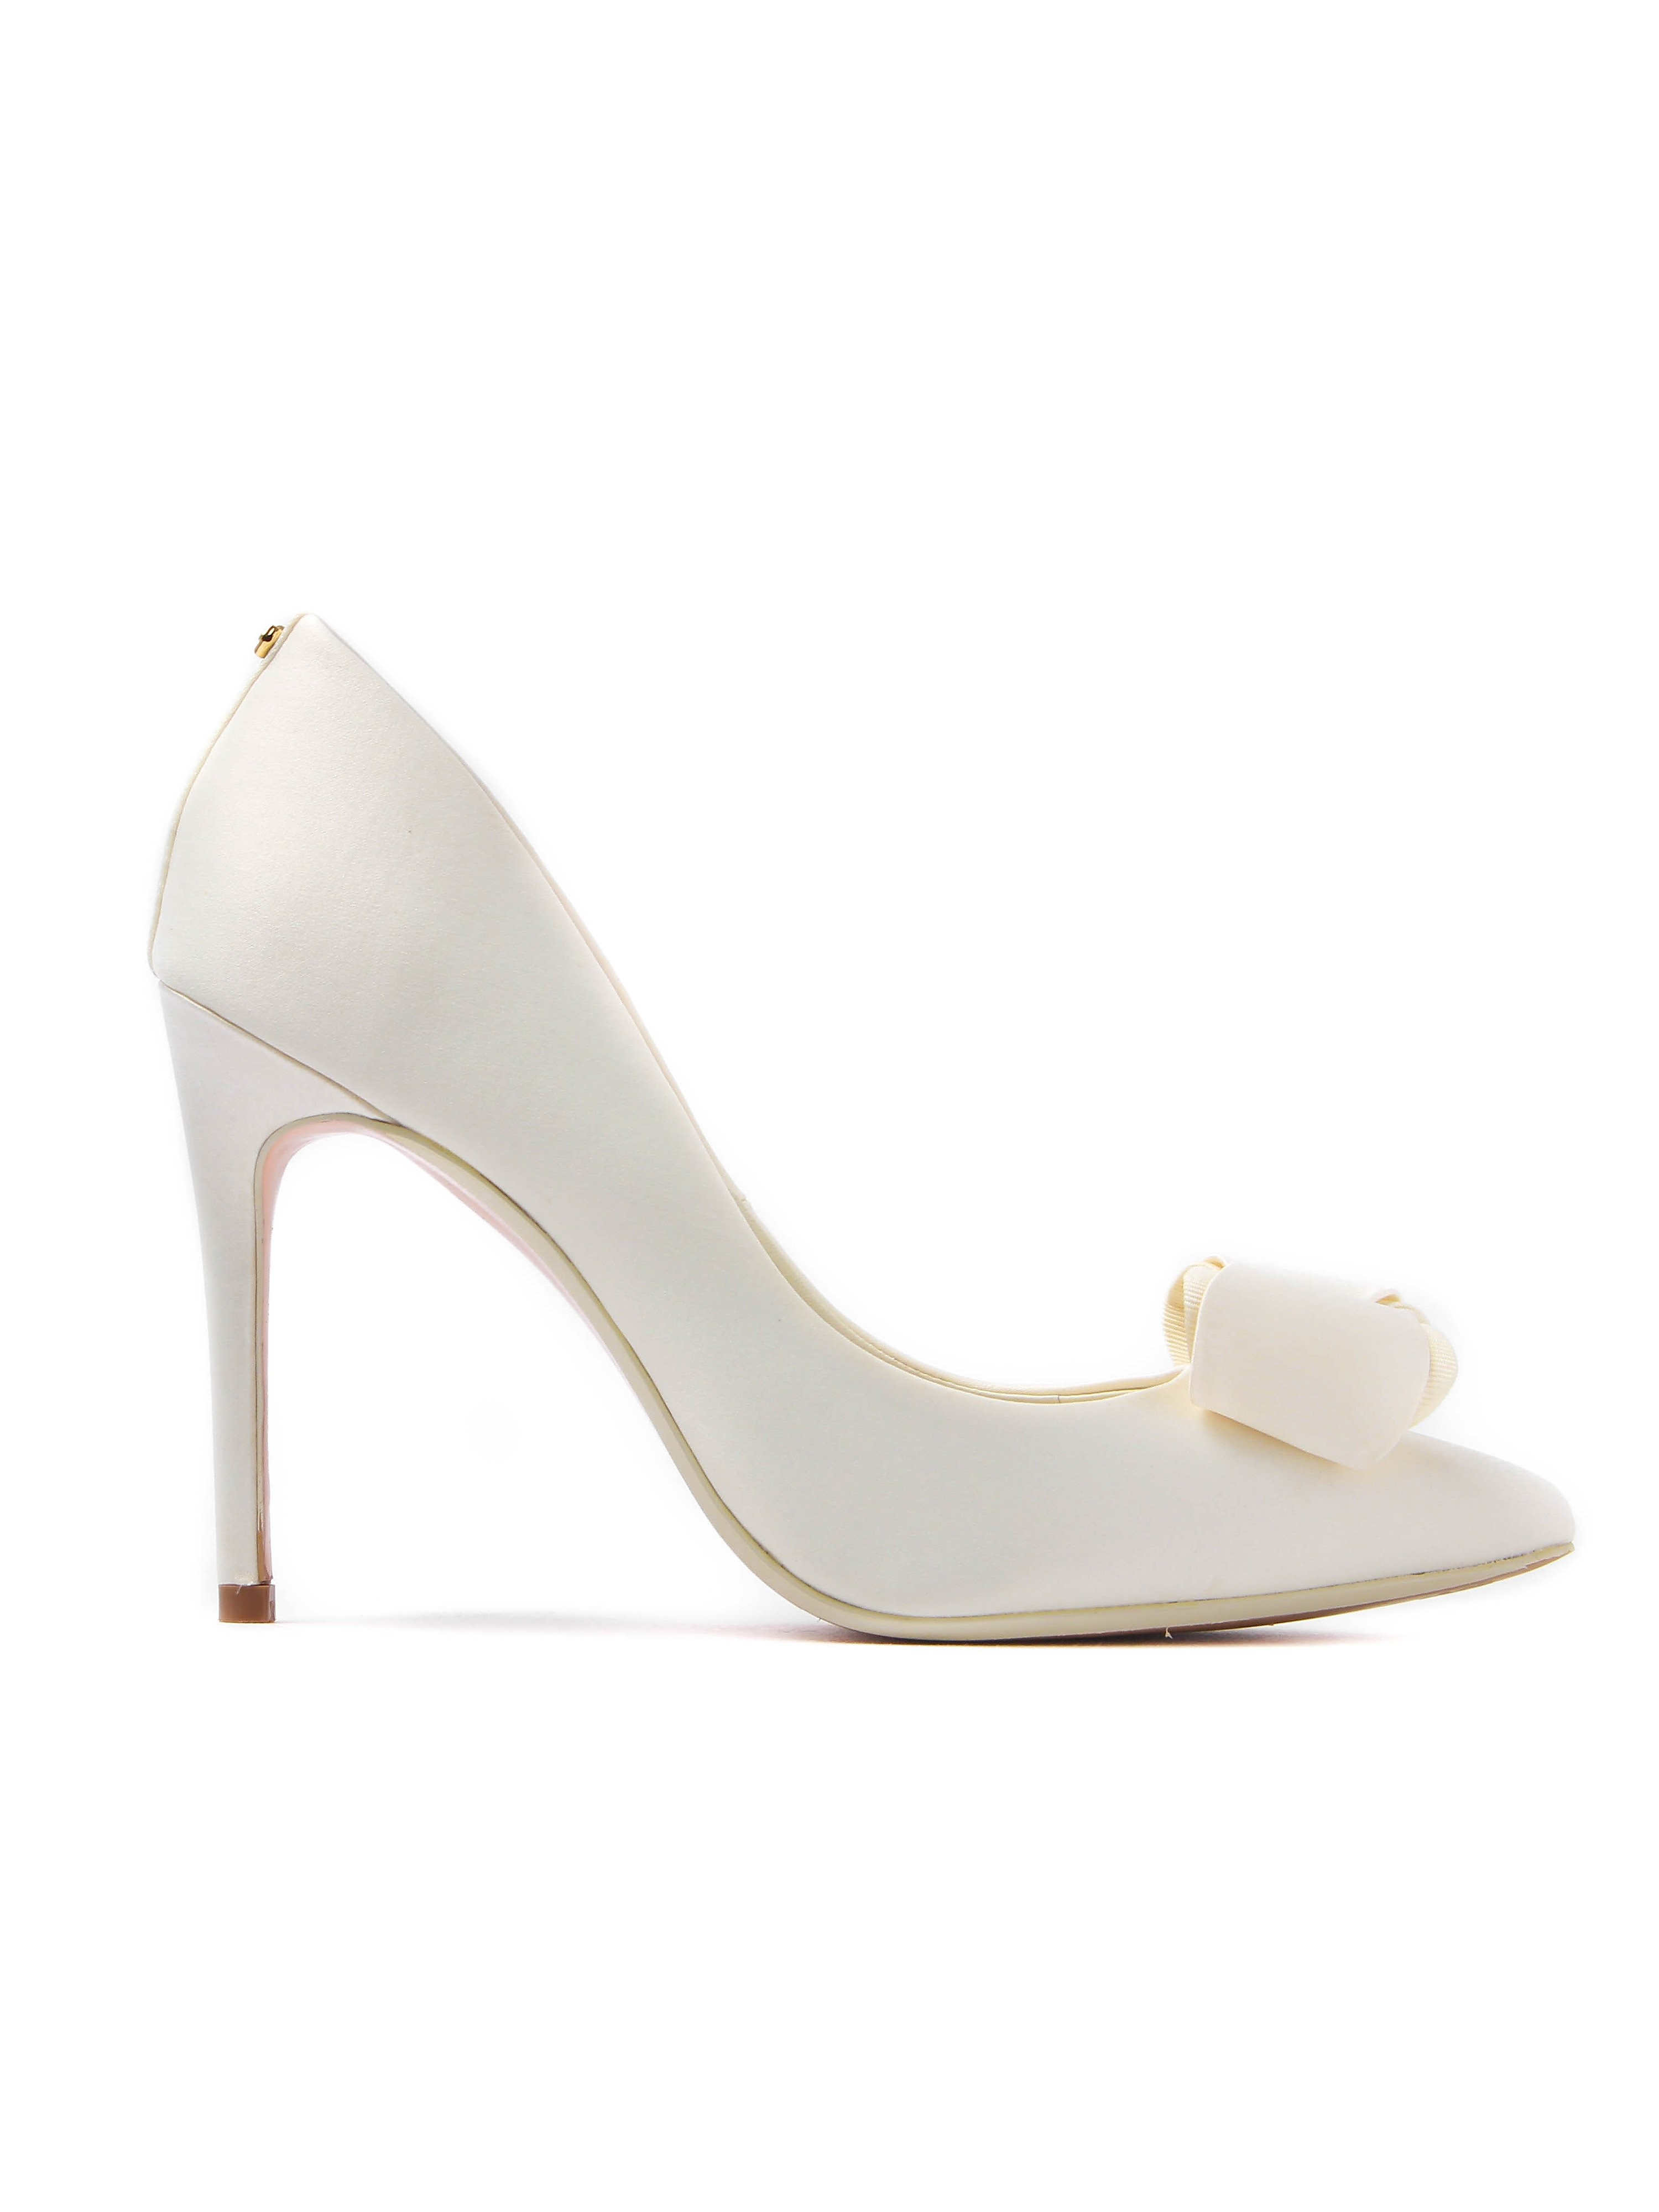 Ted Baker Women's Azeline Pointed Court Shoes - Cream